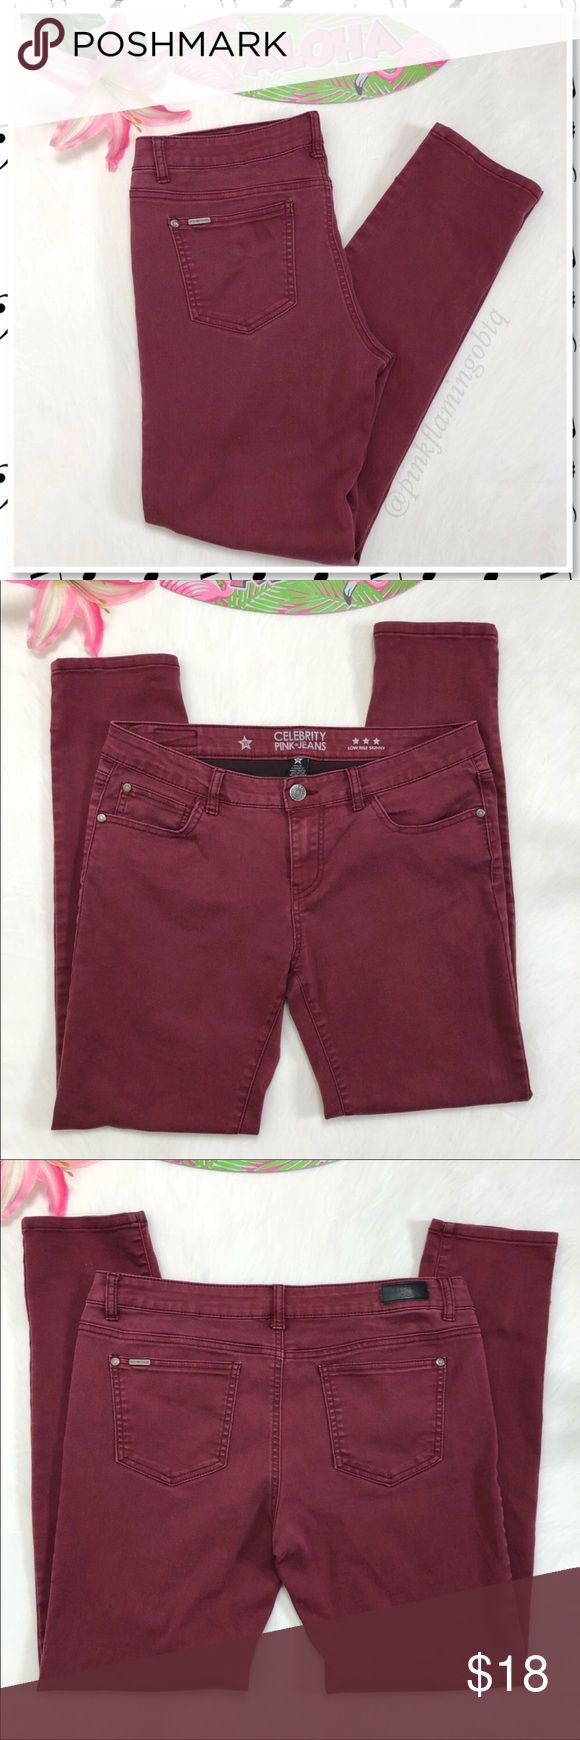 Celebrity Pink Jeans Choco Truffle Skinny Celebrity Pink Jeans Choco Truffle Low Rise Skinny. Skinny jeans that fit like a second skin. Deep burgundy color 5 pocket stying with zip and button closure. Good used condition. Some fading from wash but they had a 'vintage' type fade wash to begin with.  Only flaw is 3 tiny marks on bottom of left leg (pictured) Perfect color for the upcoming season. Measurements in photos. Photos are best descriptors.  OC156 Celebrity Pink Jeans Skinny